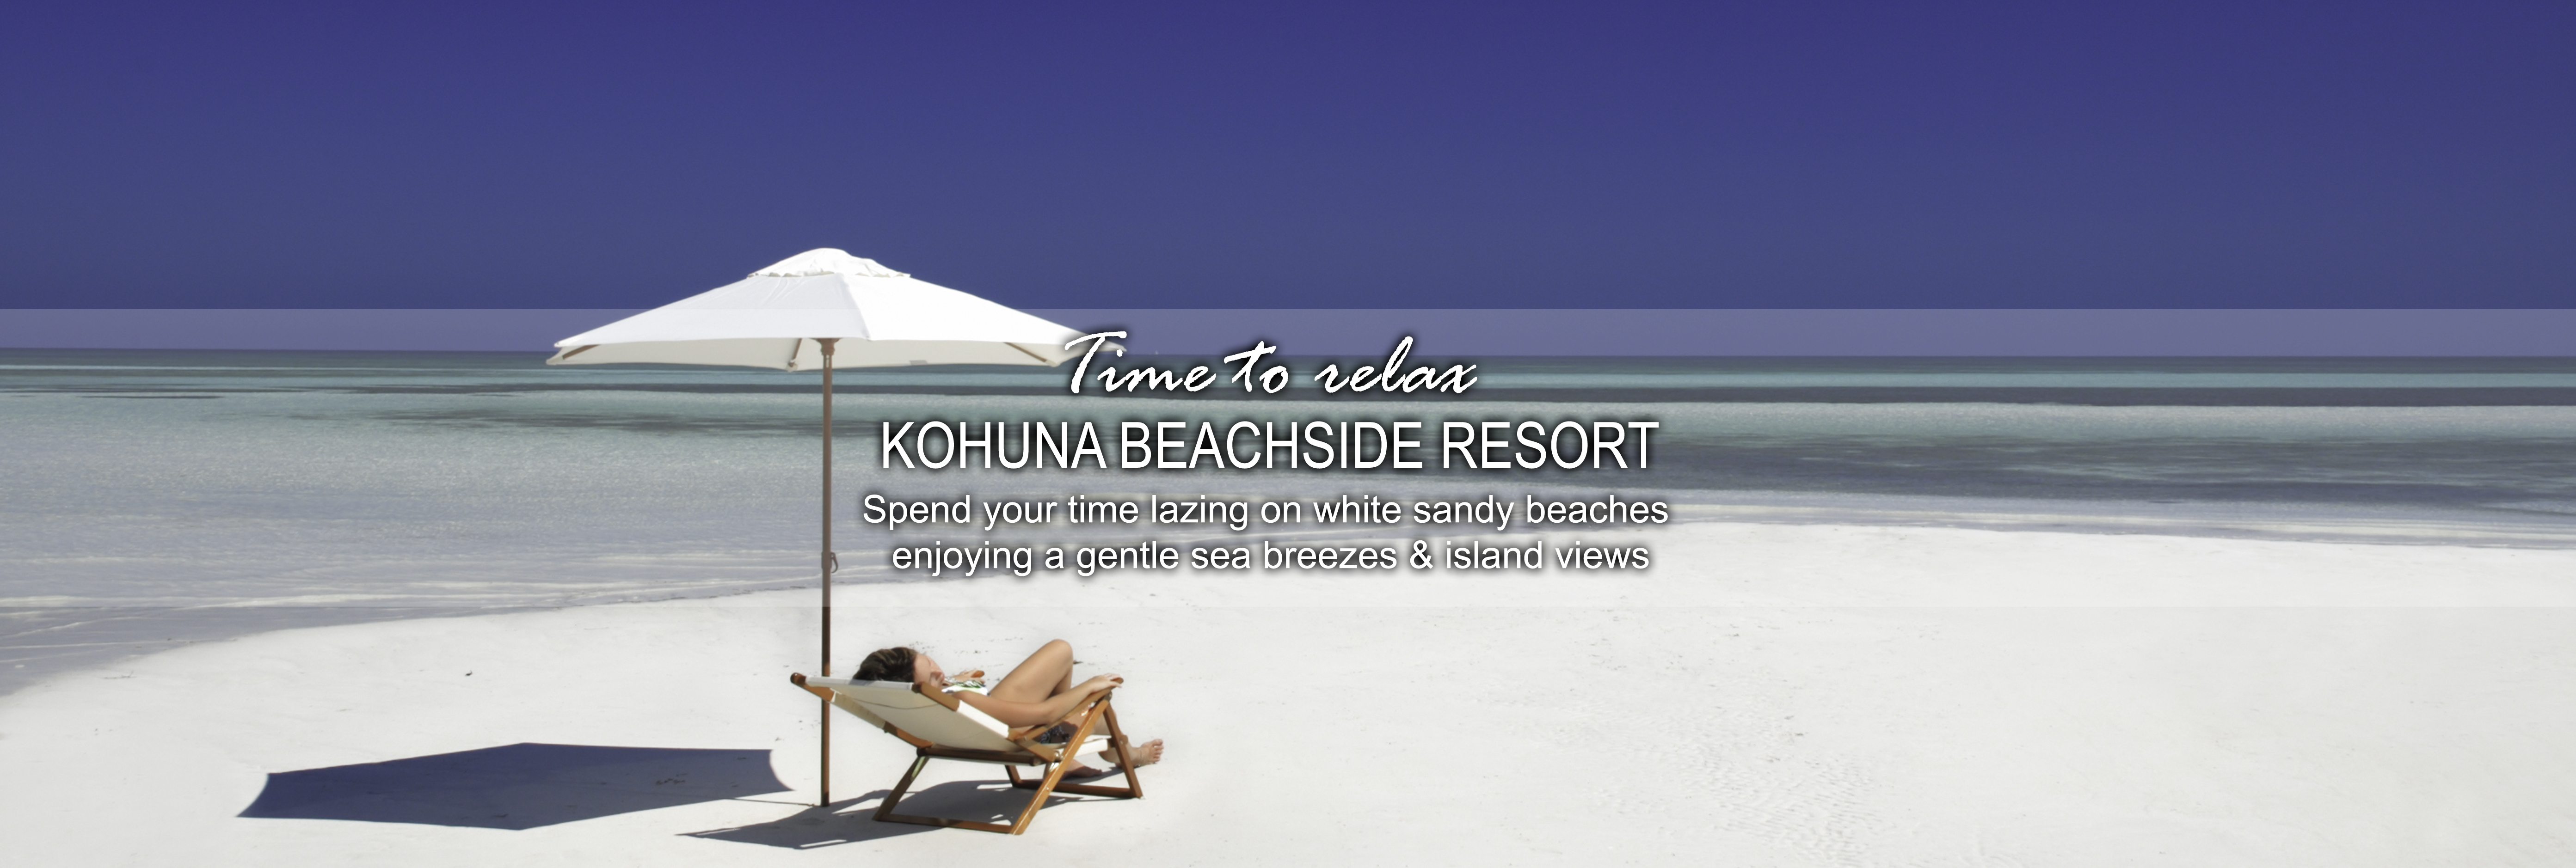 Kohuna beachside resort beach